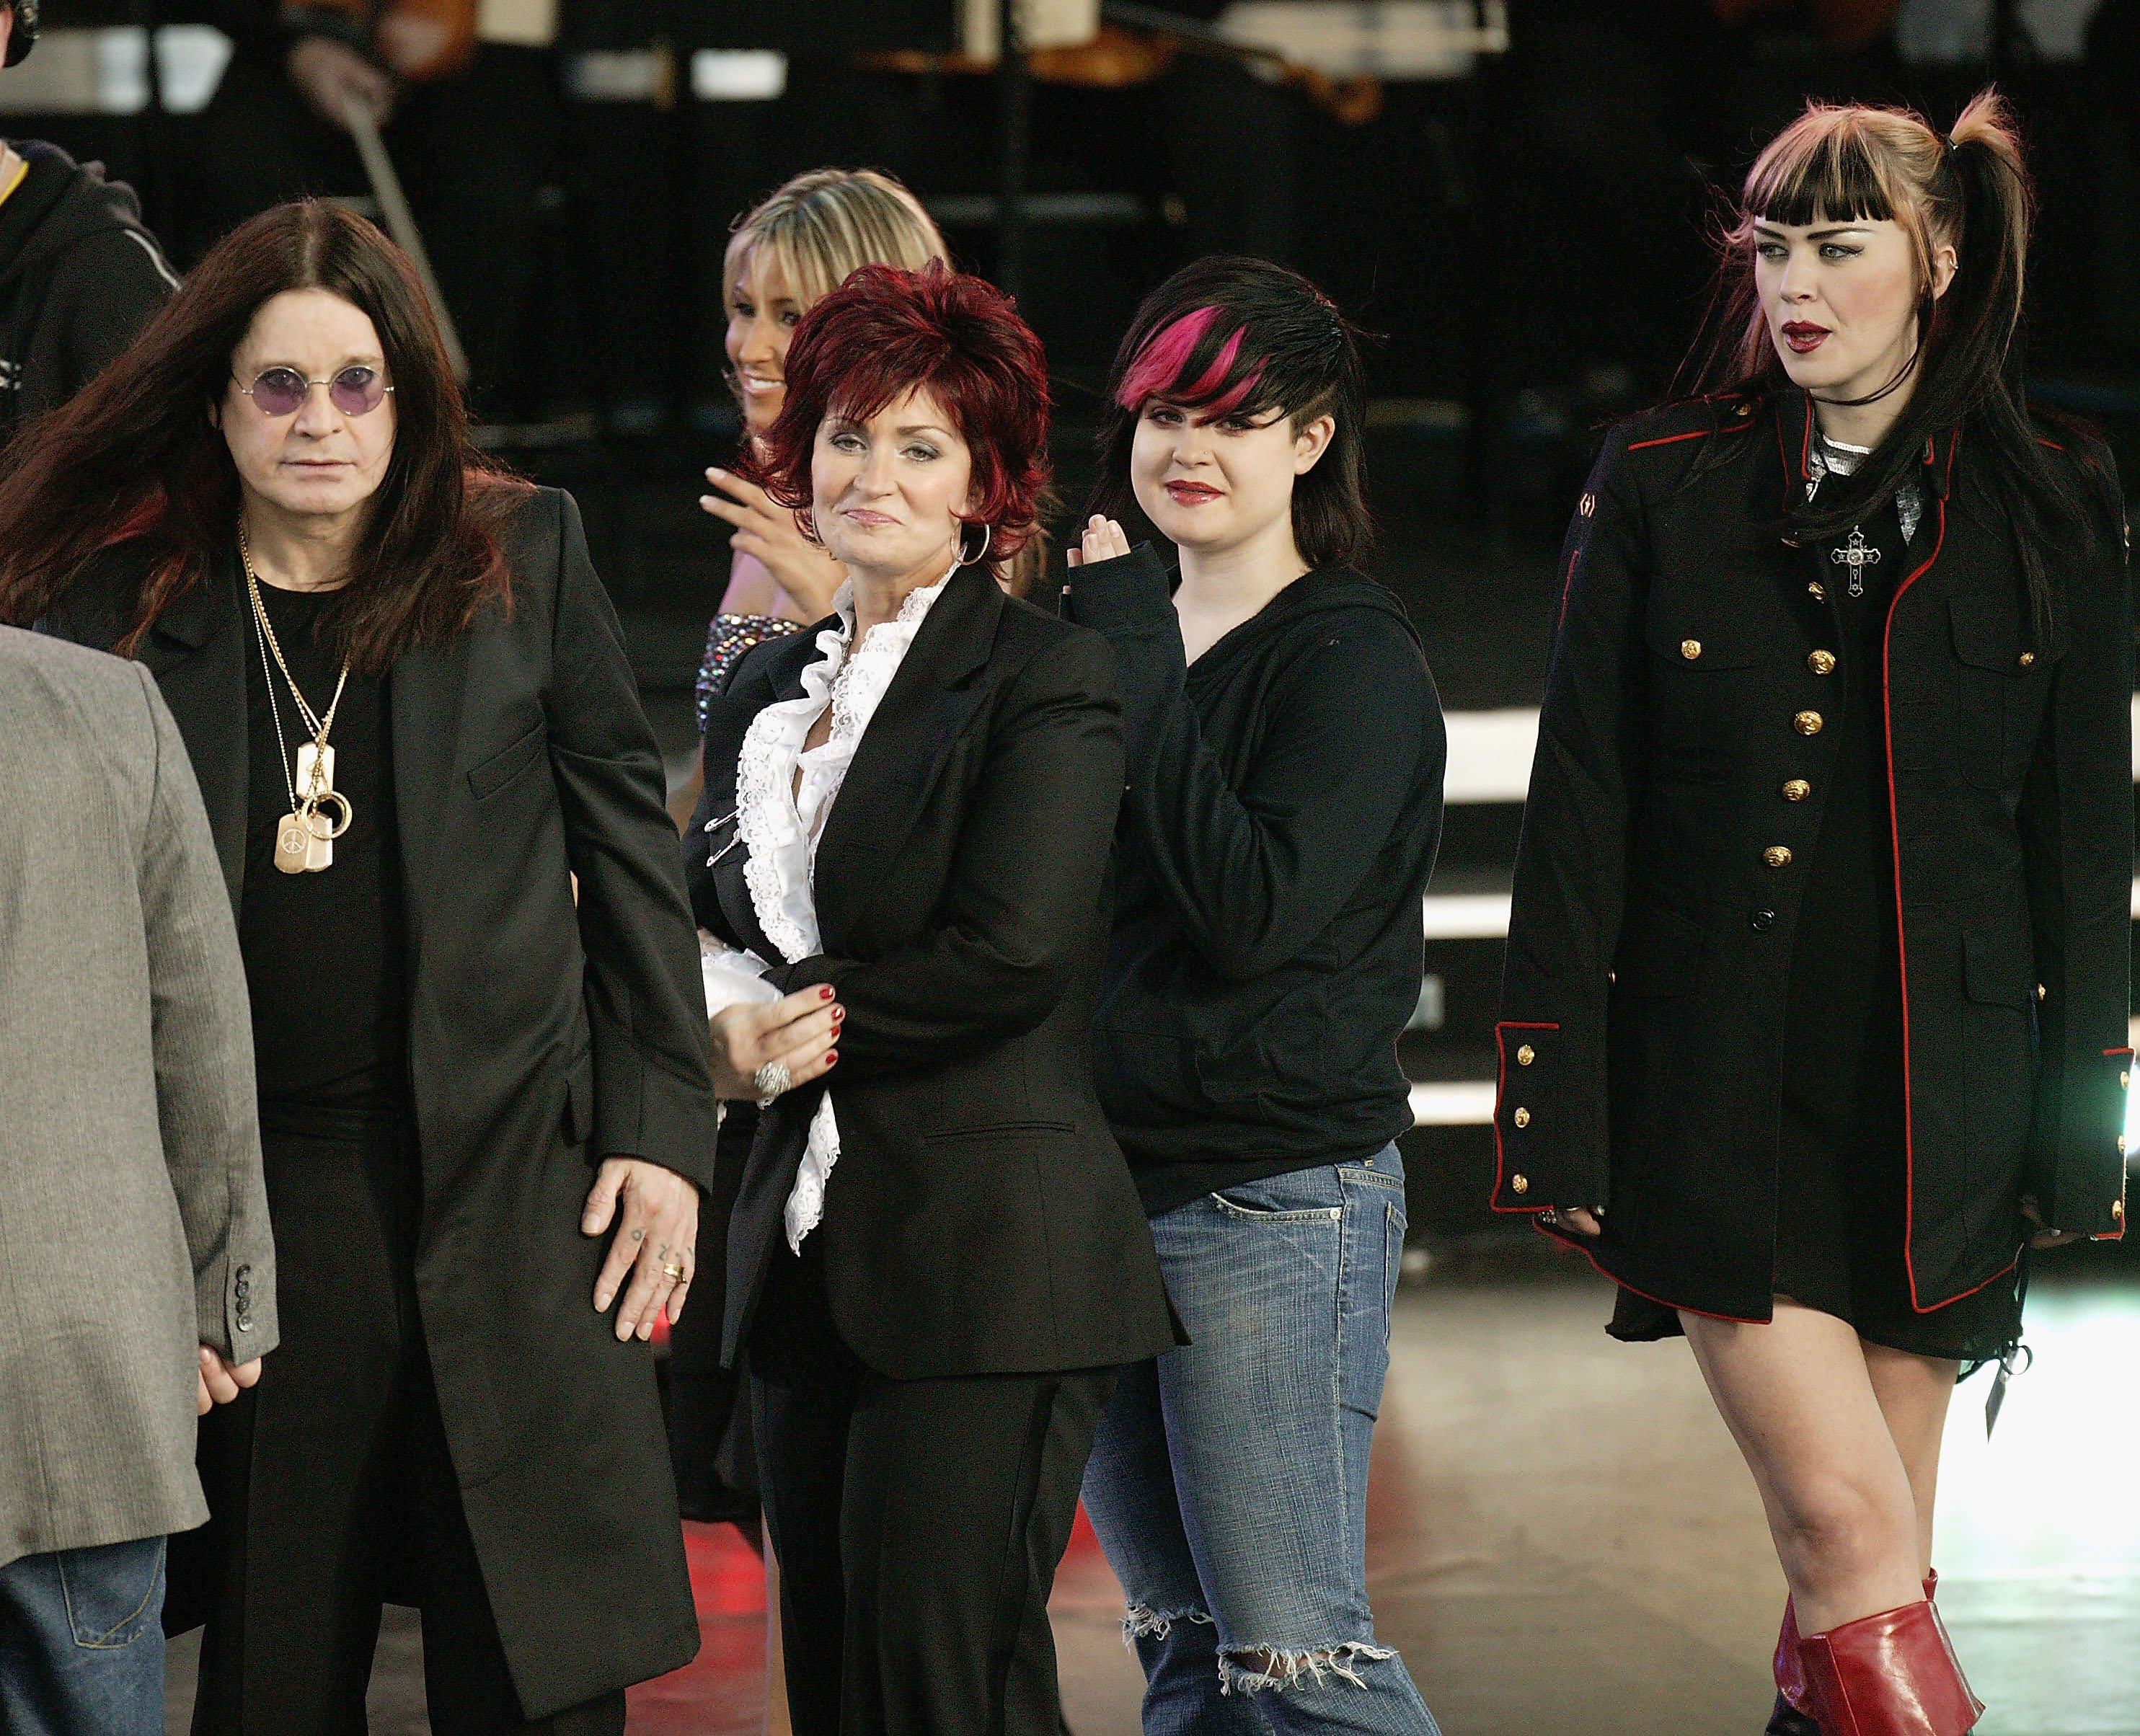 Ozzy, Sharon, Kelly und Aimee Osbourne besuchen 2004 ein Konzert in London. | Quelle: Getty Images